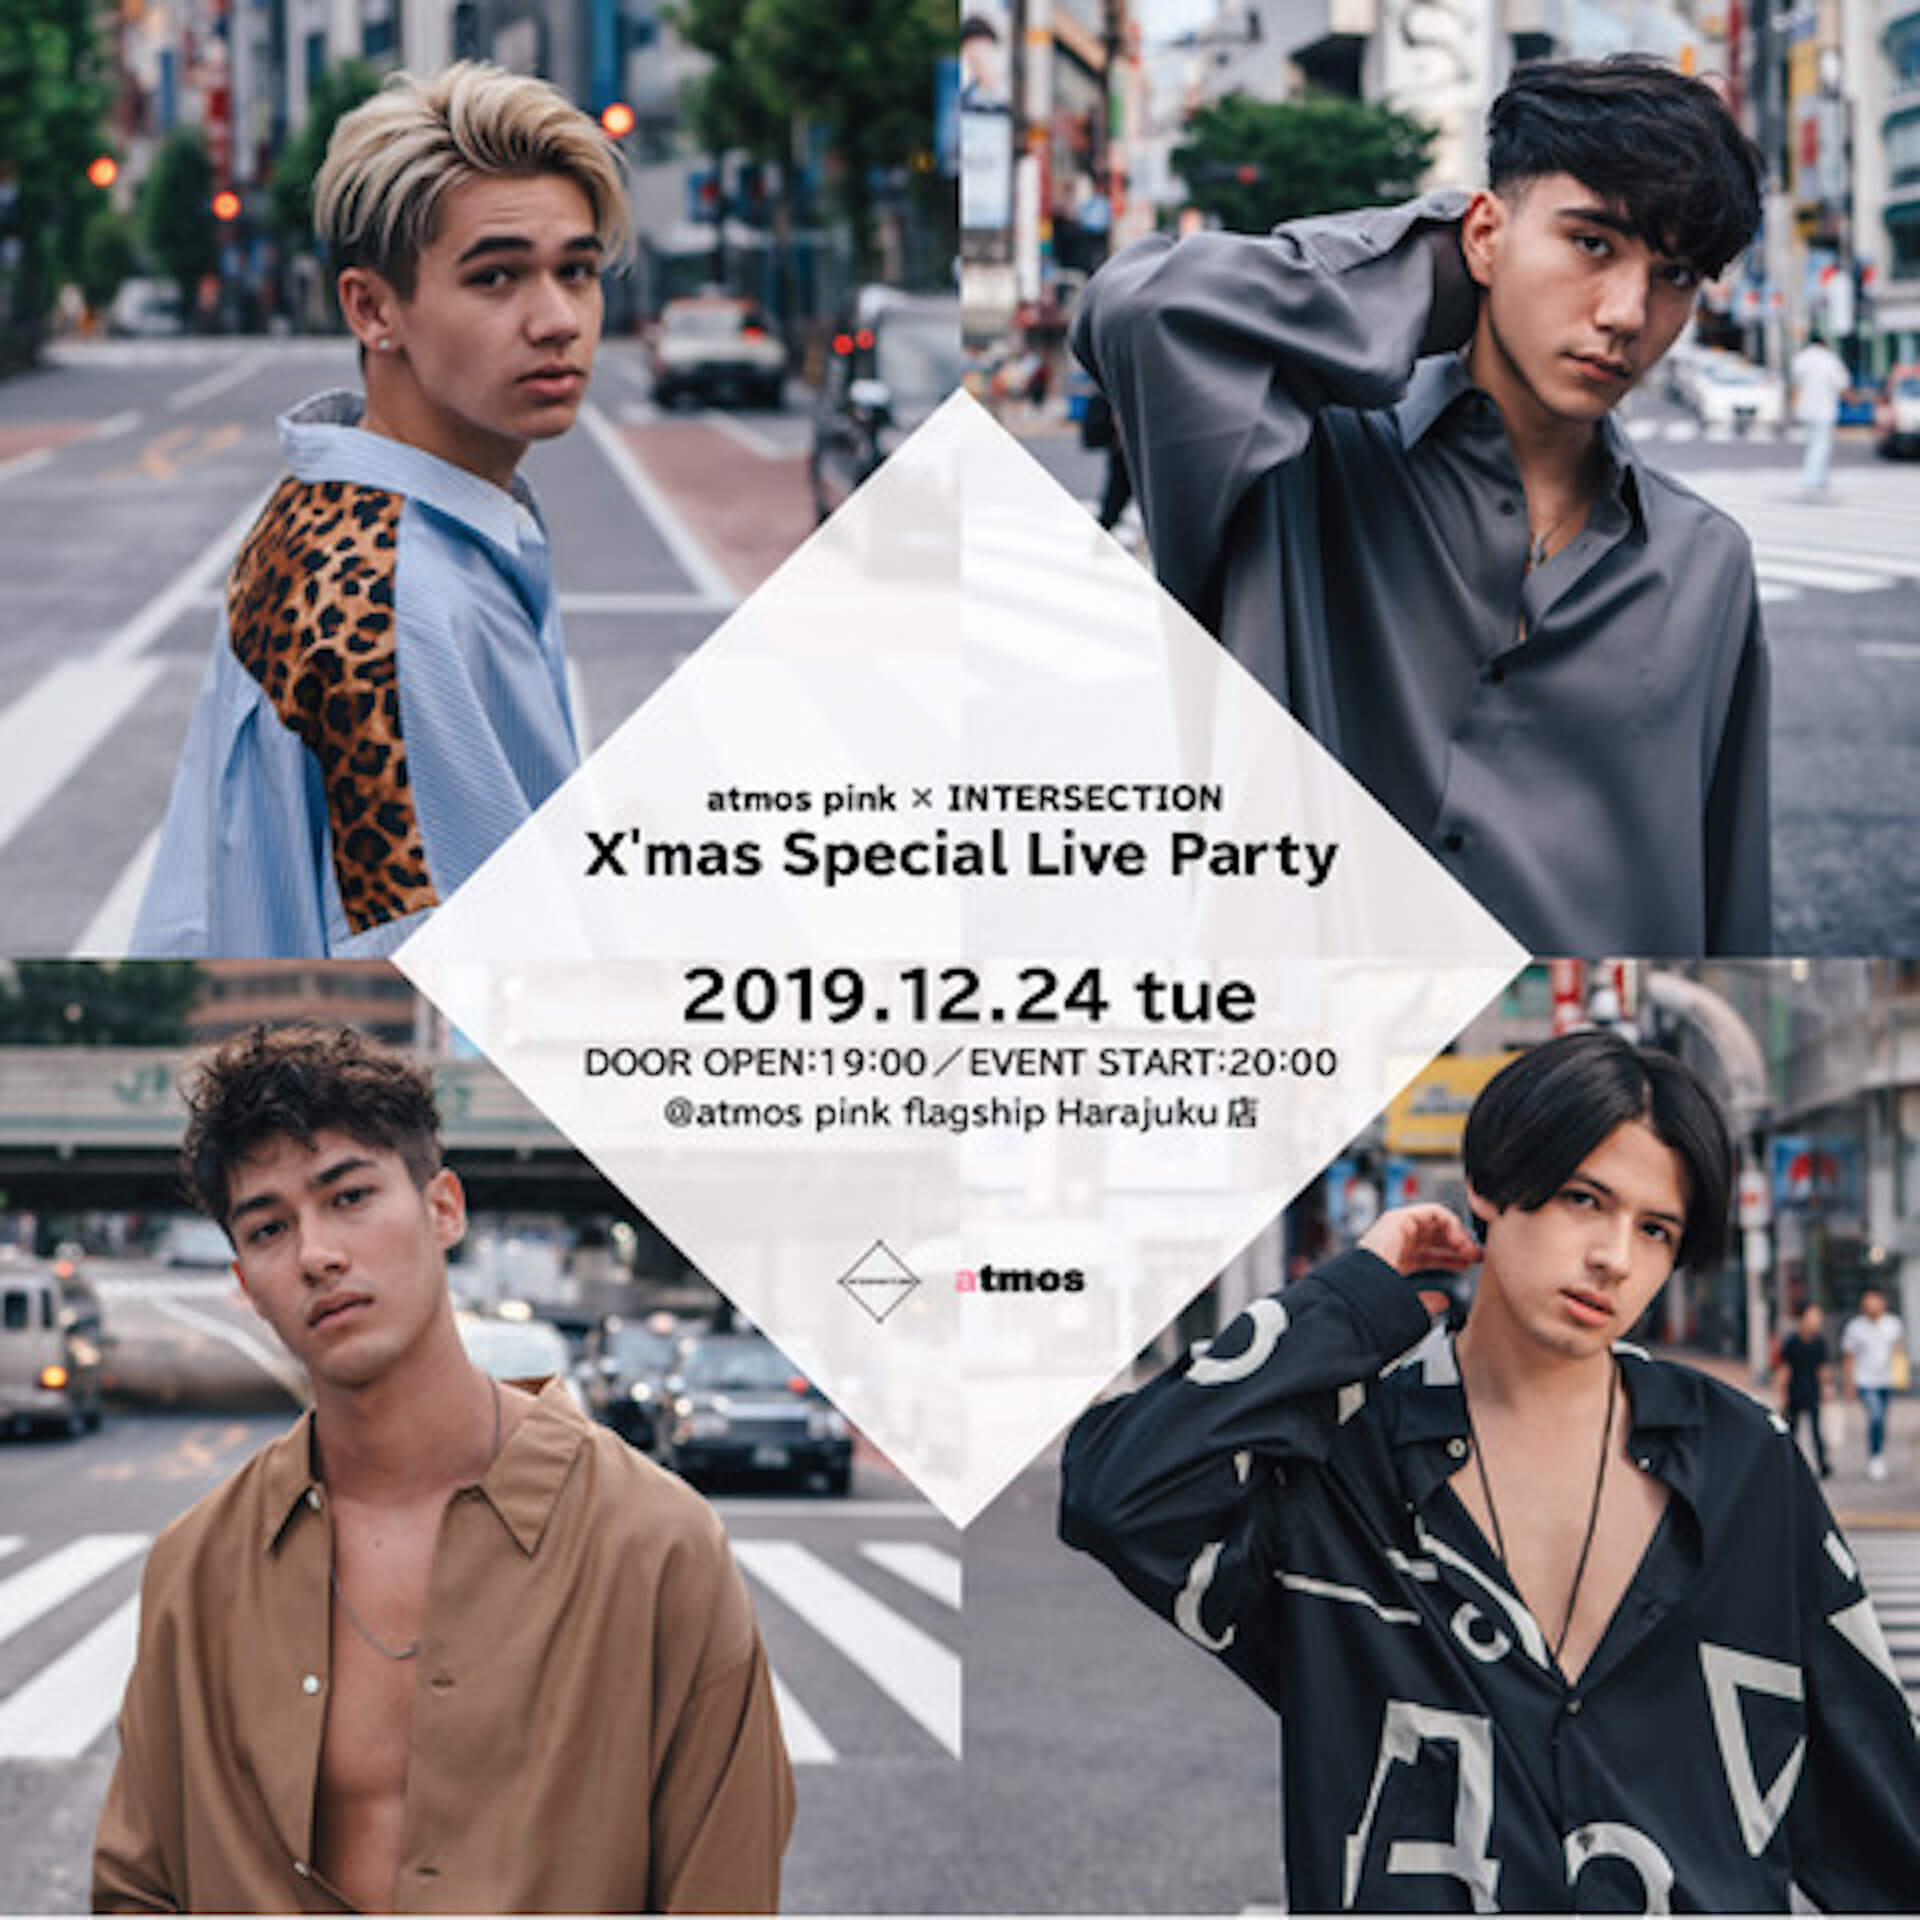 INTERSECTIONがatmos pinkでクリスマスパーティーを敢行!4カ月ぶりにメンバー全員が揃うミニライブ&トークショーも life191212_intersection_atmospink_2